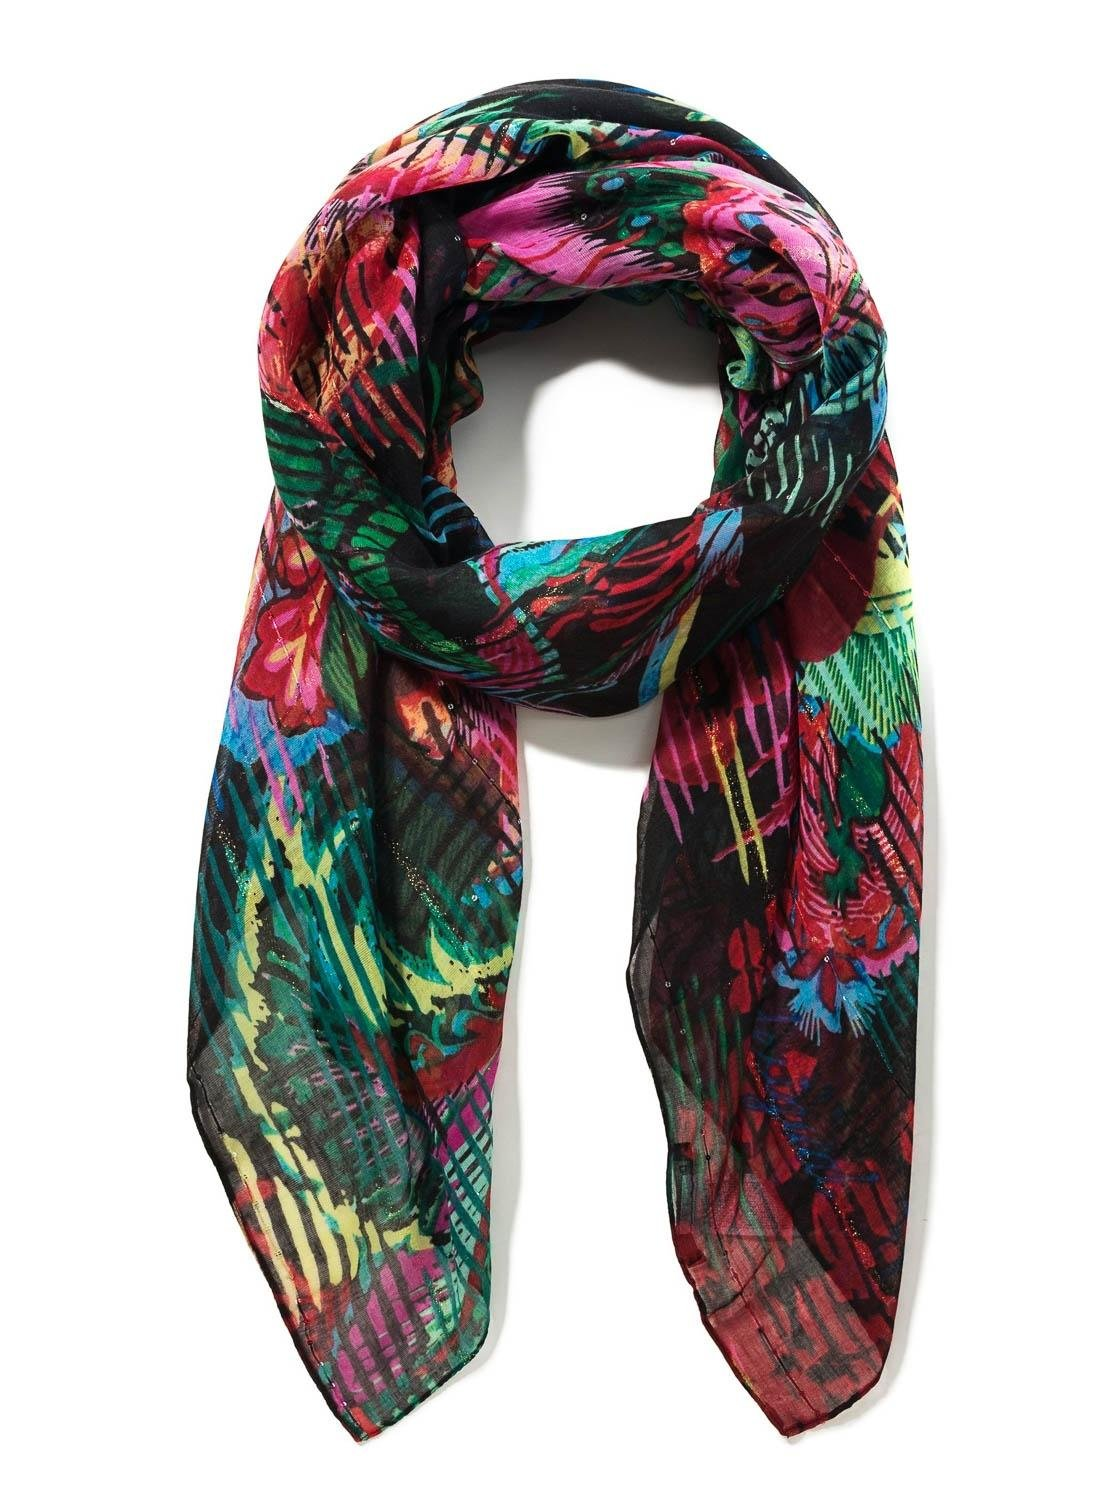 desigual foulard  Desigual Foulard Ramona nero Donna - Girls like you